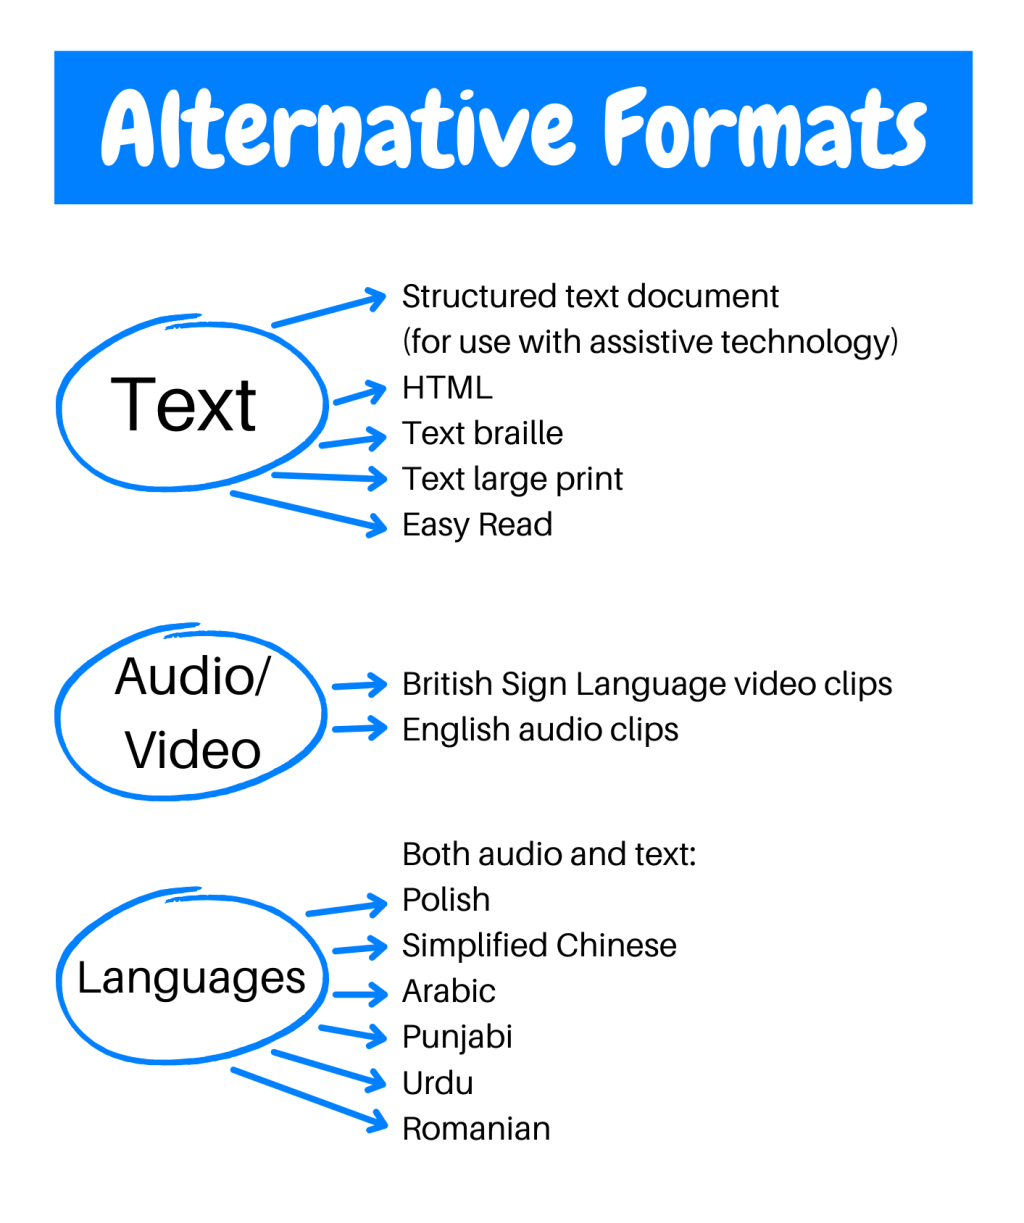 Alternative formats Text Structured text document- for use with assistive technology HTML Text braille Text large print Easy Read Audio and video British Sign Language video clips English audio files Languages Both spoken and text: Polish, Simplified Chinese, Arabic, Punjabi, Urdu, Romanian